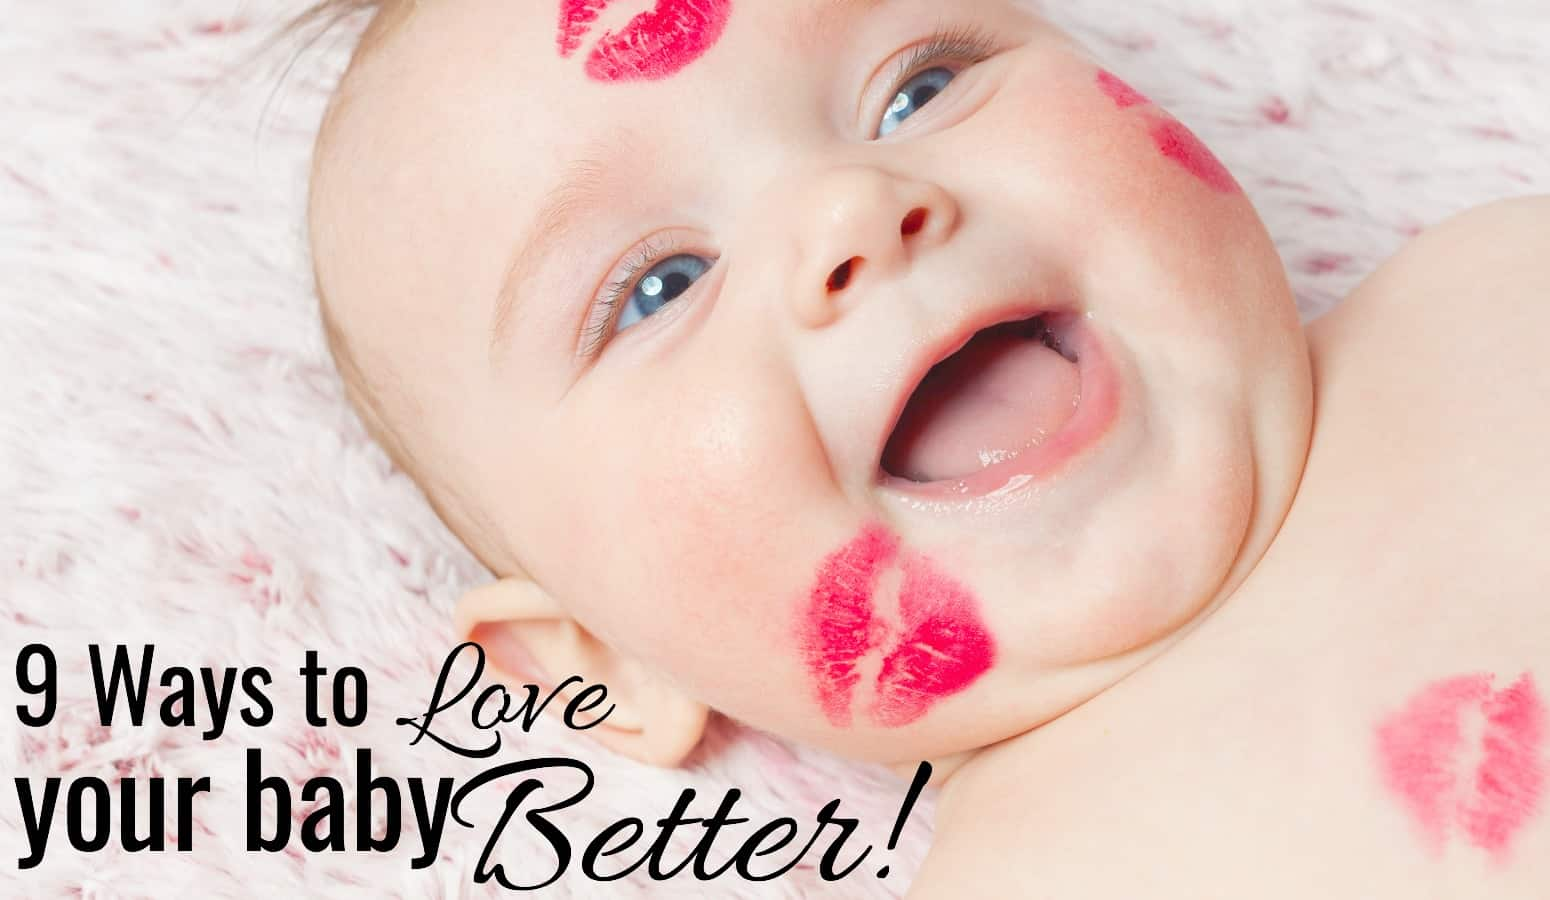 9 Ways To Love Your Baby Better.